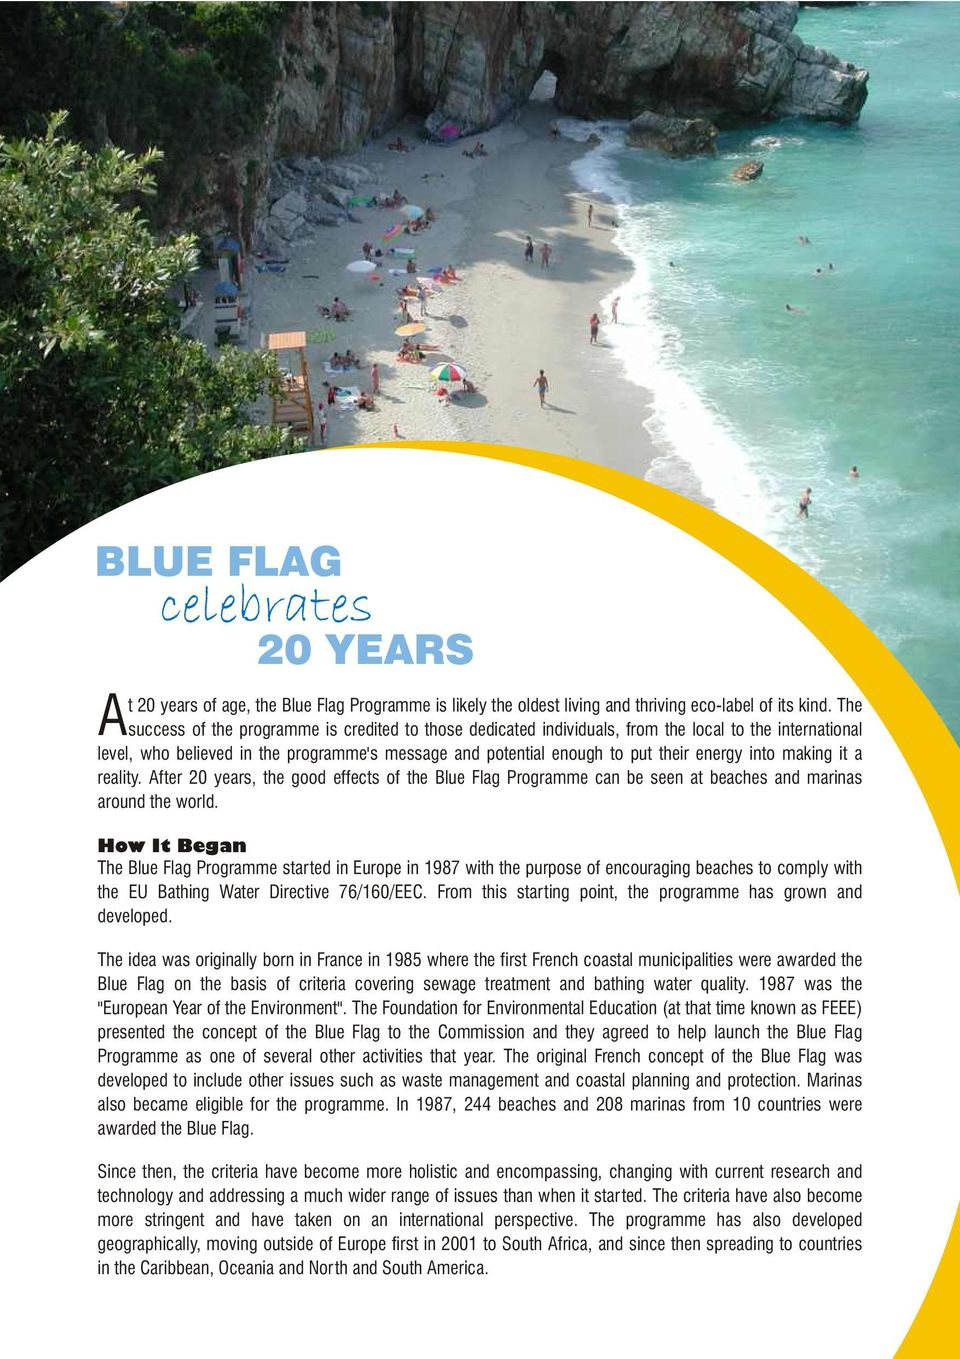 into making it a reality. After 20 years, the good effects of the Blue Flag Programme can be seen at beaches and marinas around the world.